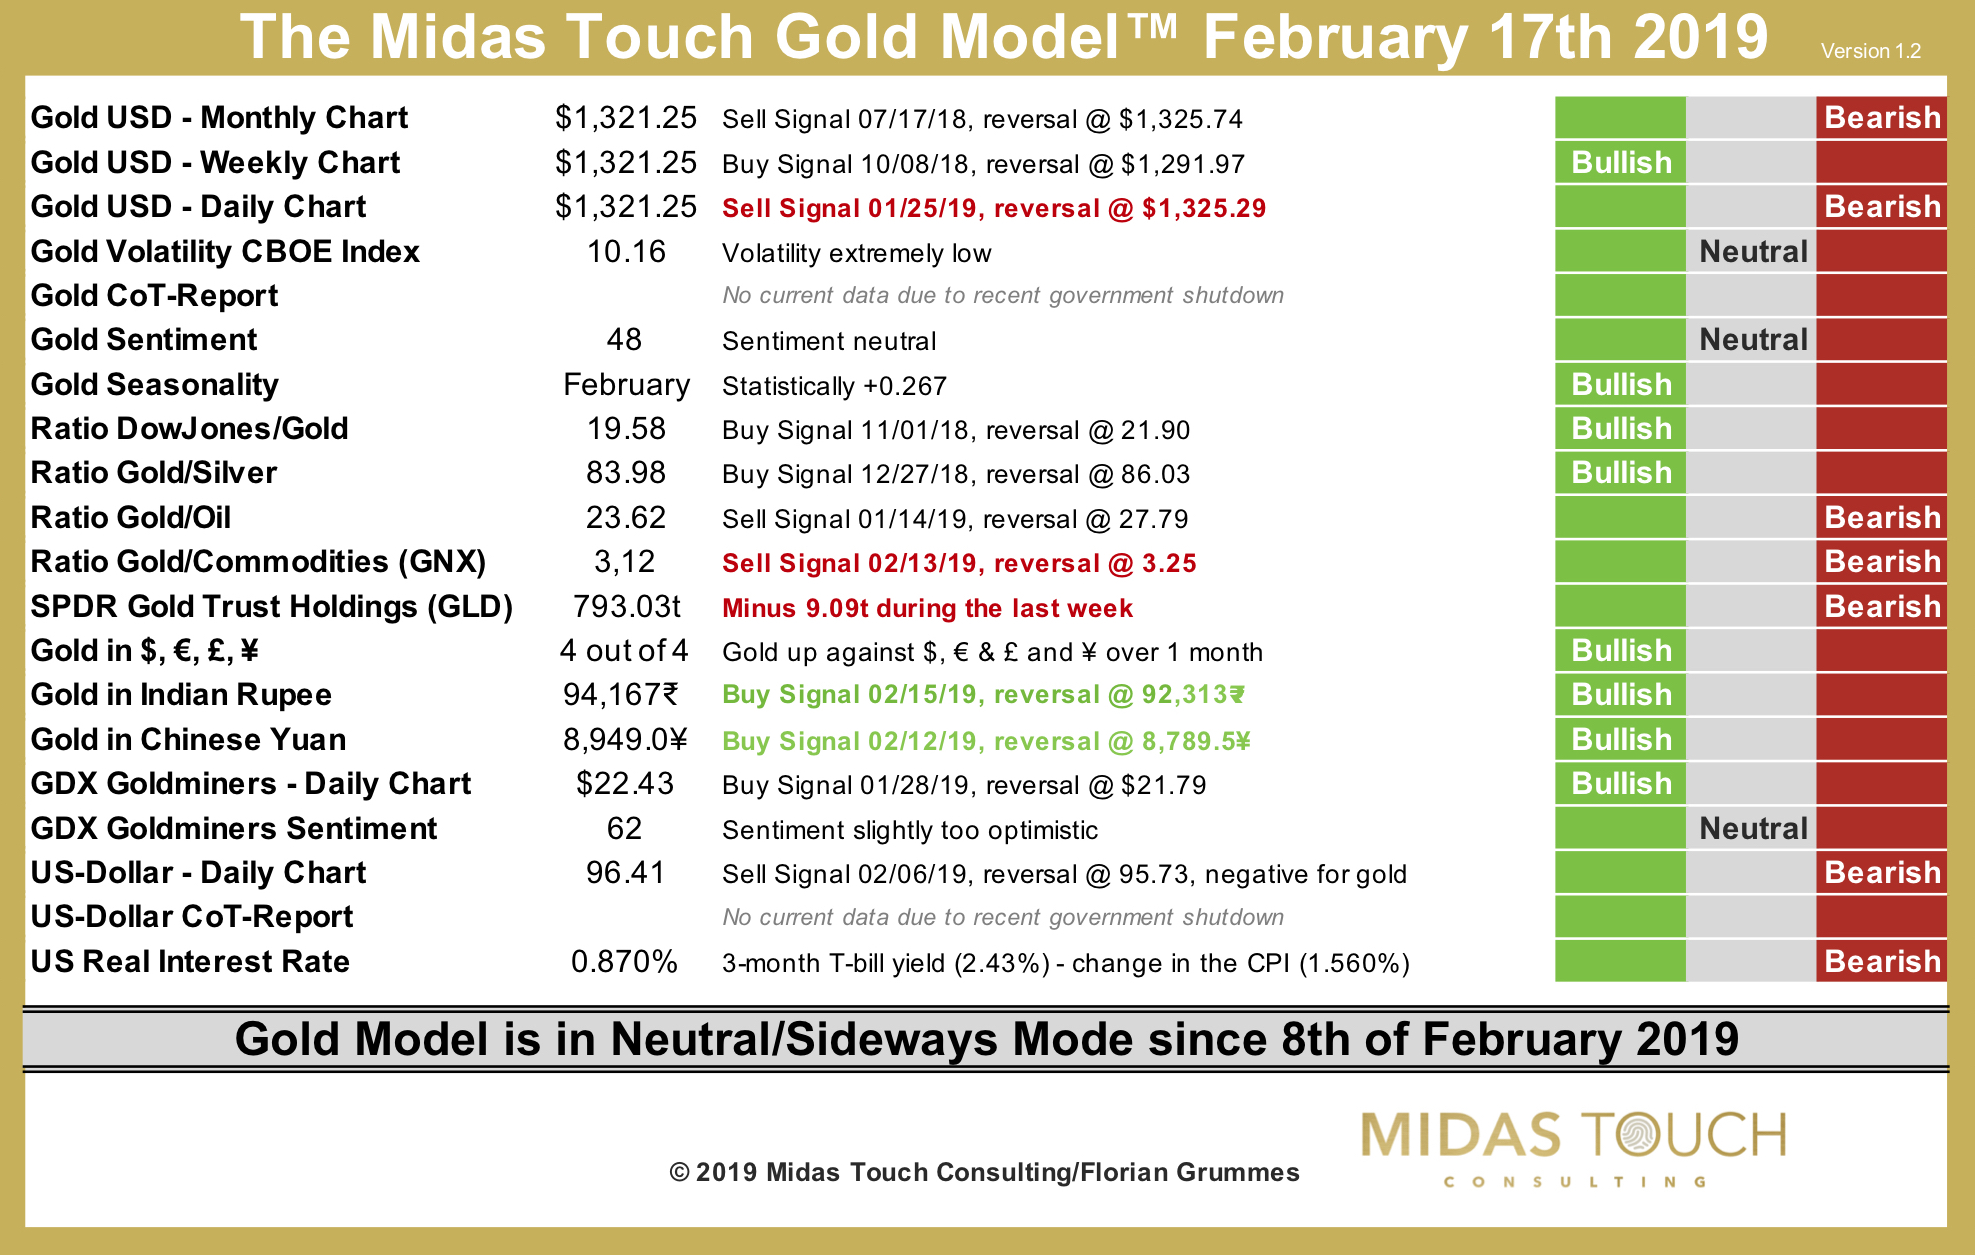 The Midas Touch Gold Model™ as of February 17th, 2019